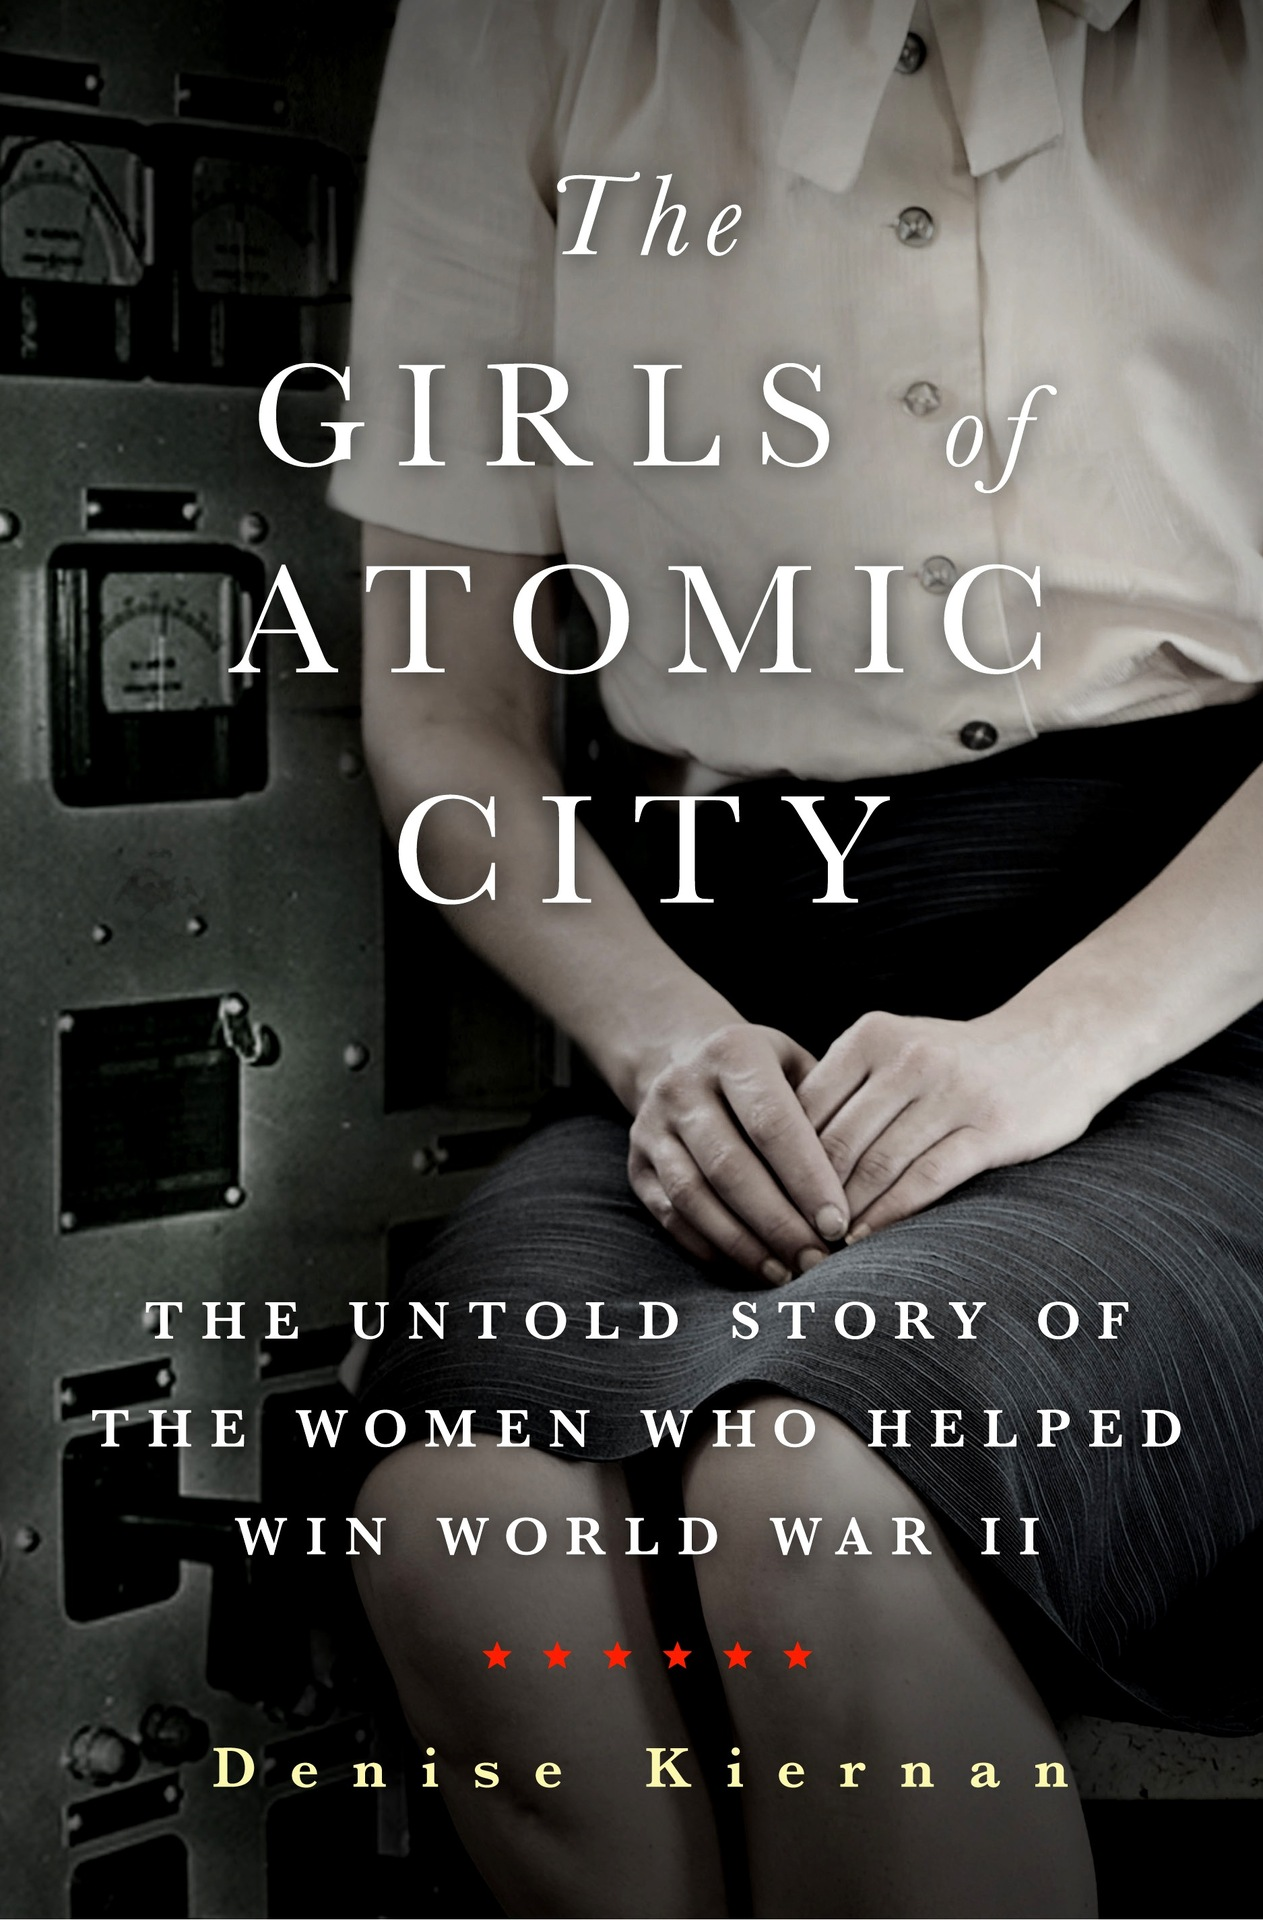 This just in! My wife and sometimes co-author Denise Kiernan just got the cover of her next book, The Girls of Atomic City, about the women who unknowingly worked to create the fuel for the first bomb. It's a true story—a narrative nonfiction title that will be published by Touchstone/Simon & Schuster in March 2013. I'm proud of her. It's a project she's been working on, in various ways, for the last seven years or so. To find out more, you can check out Denise's website… Sign up for the newsletter at the book site… Check out her old-timey WWII-era images on her Tumblr blog. You can pre-order via Amazon. Or pre-order a signed copy via our indie bookstore, Malaprops.  I'll post again about this when she gets a trailer together.